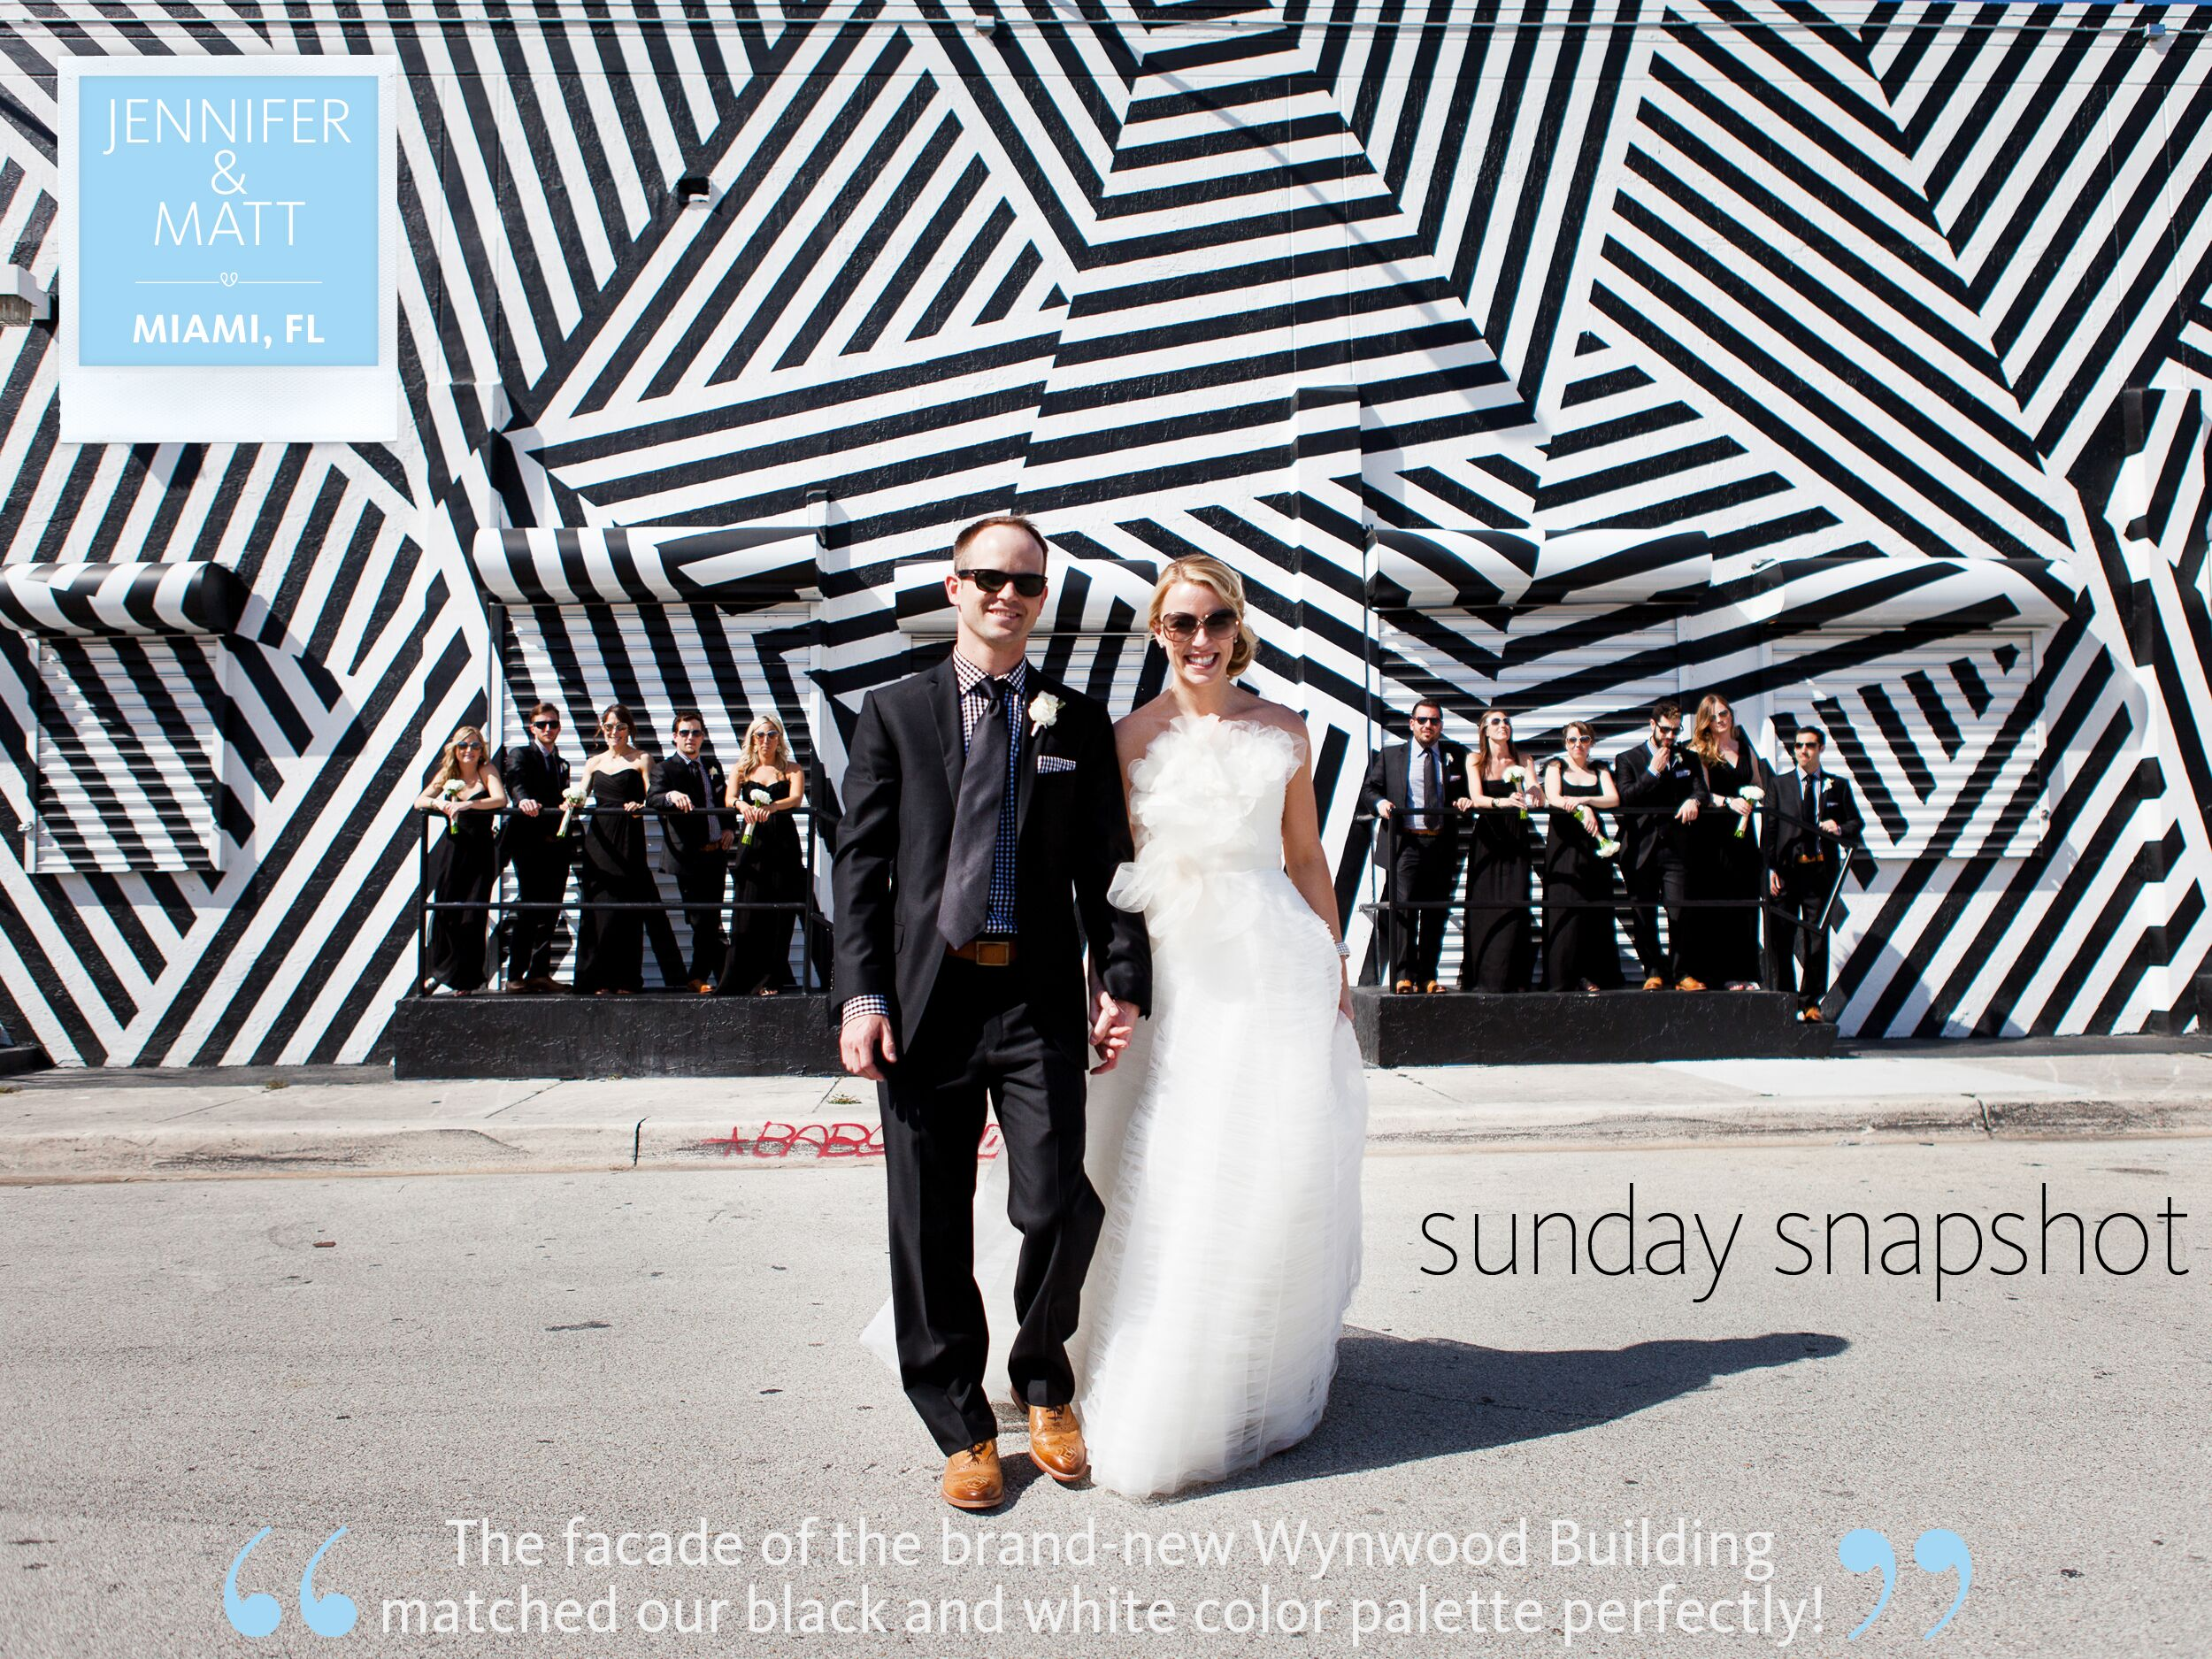 Miami wedding party photo in front of the Wynwood Building.